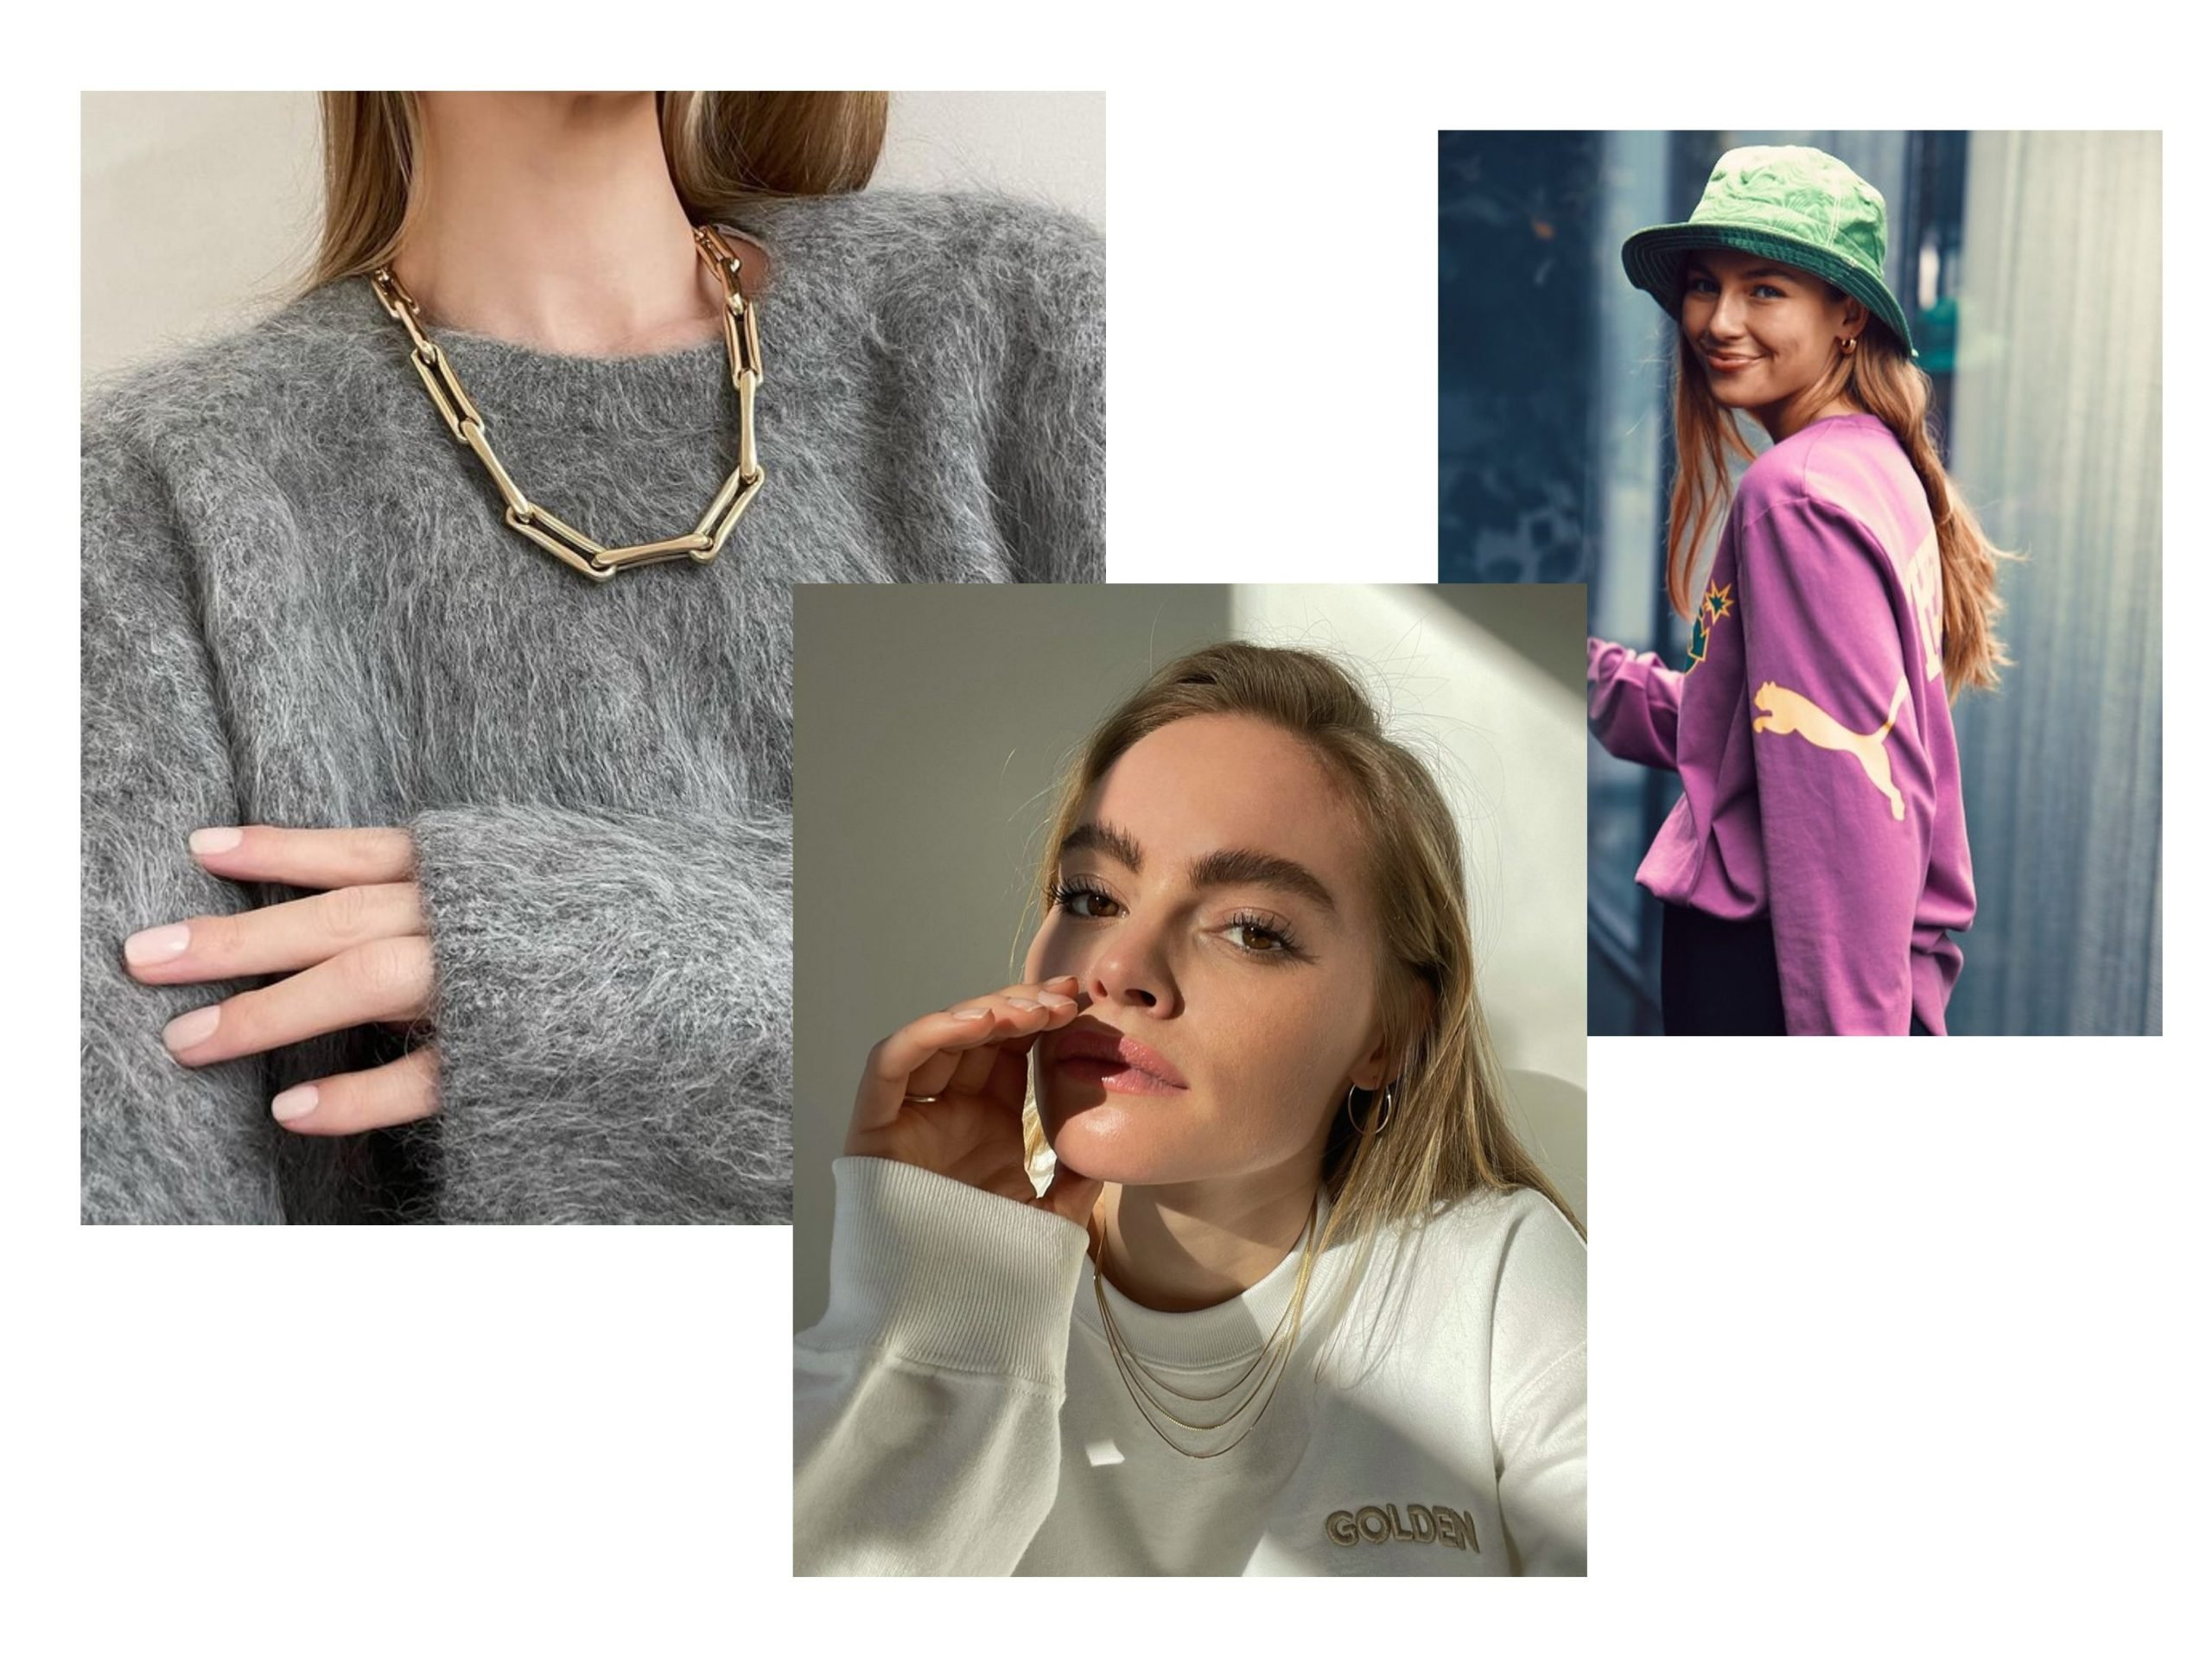 Casual clothes with jewellery